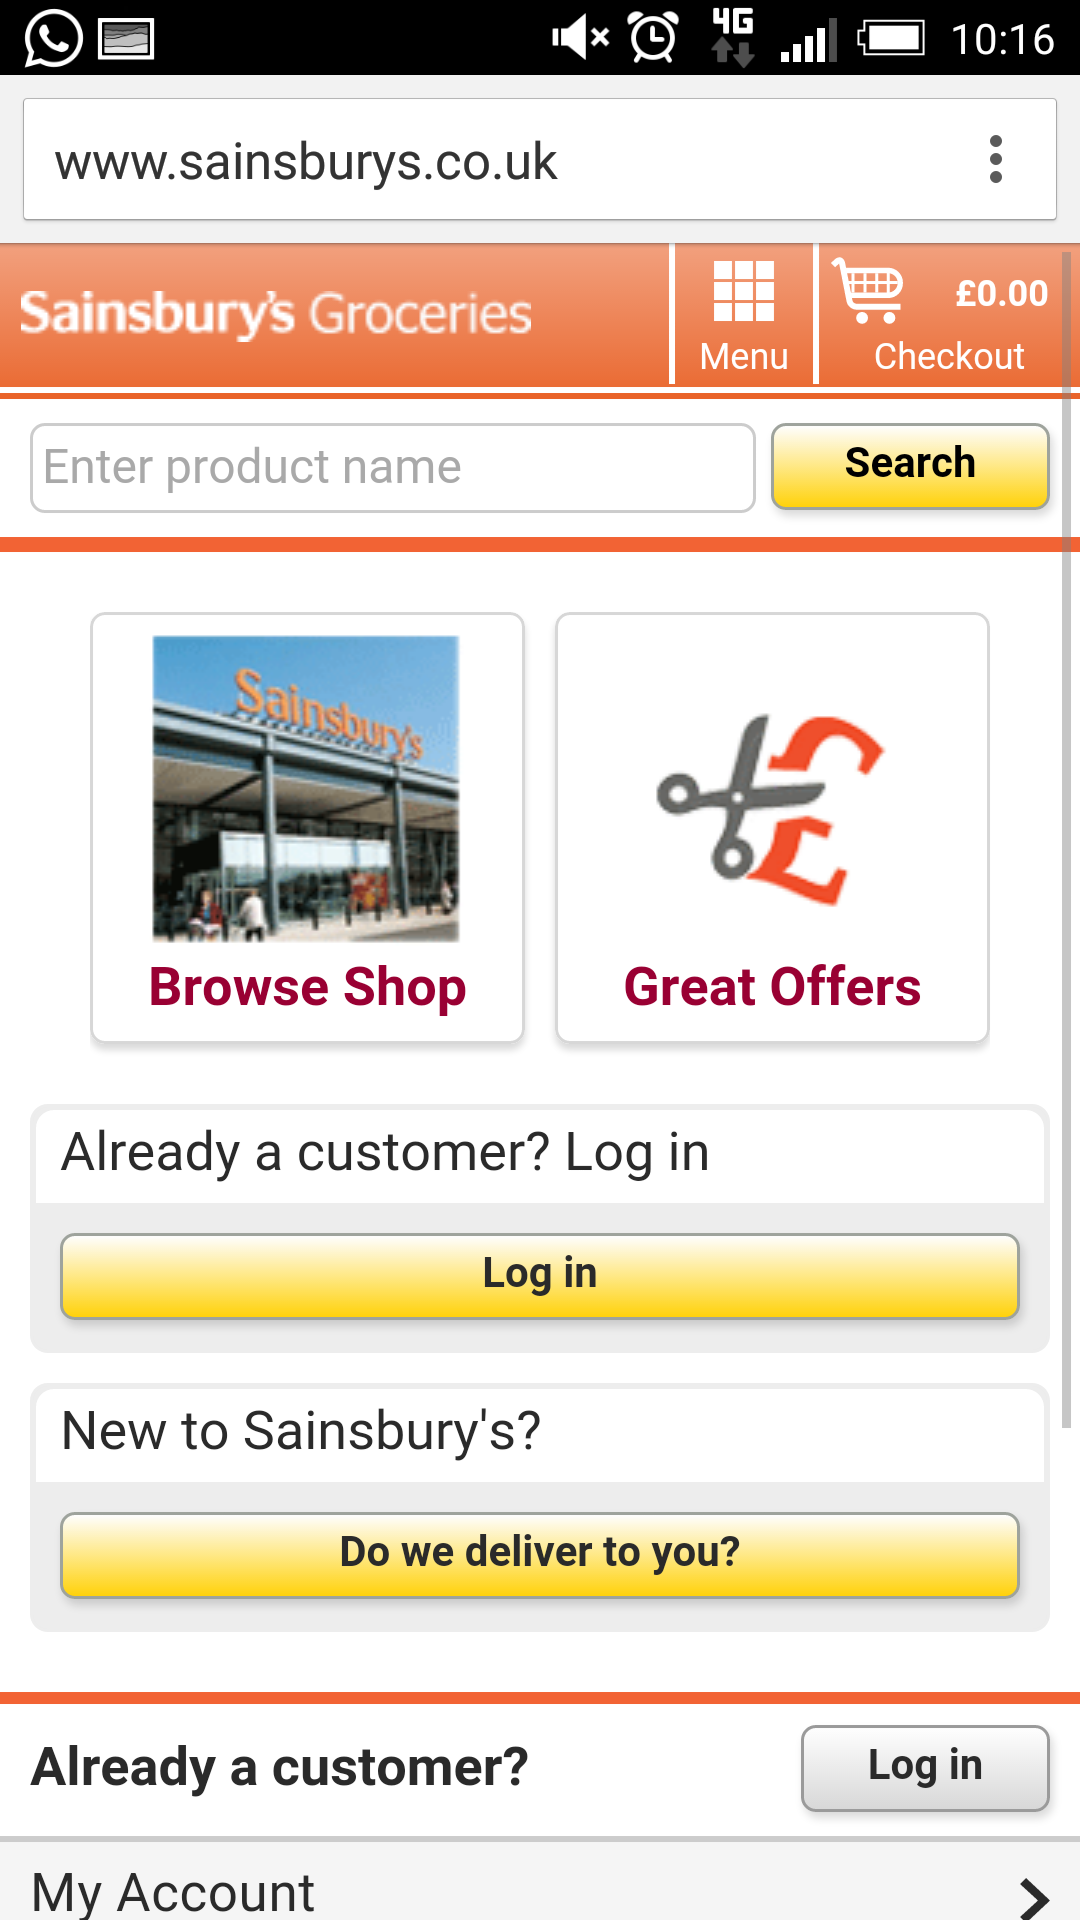 Sainsbury's mobile site